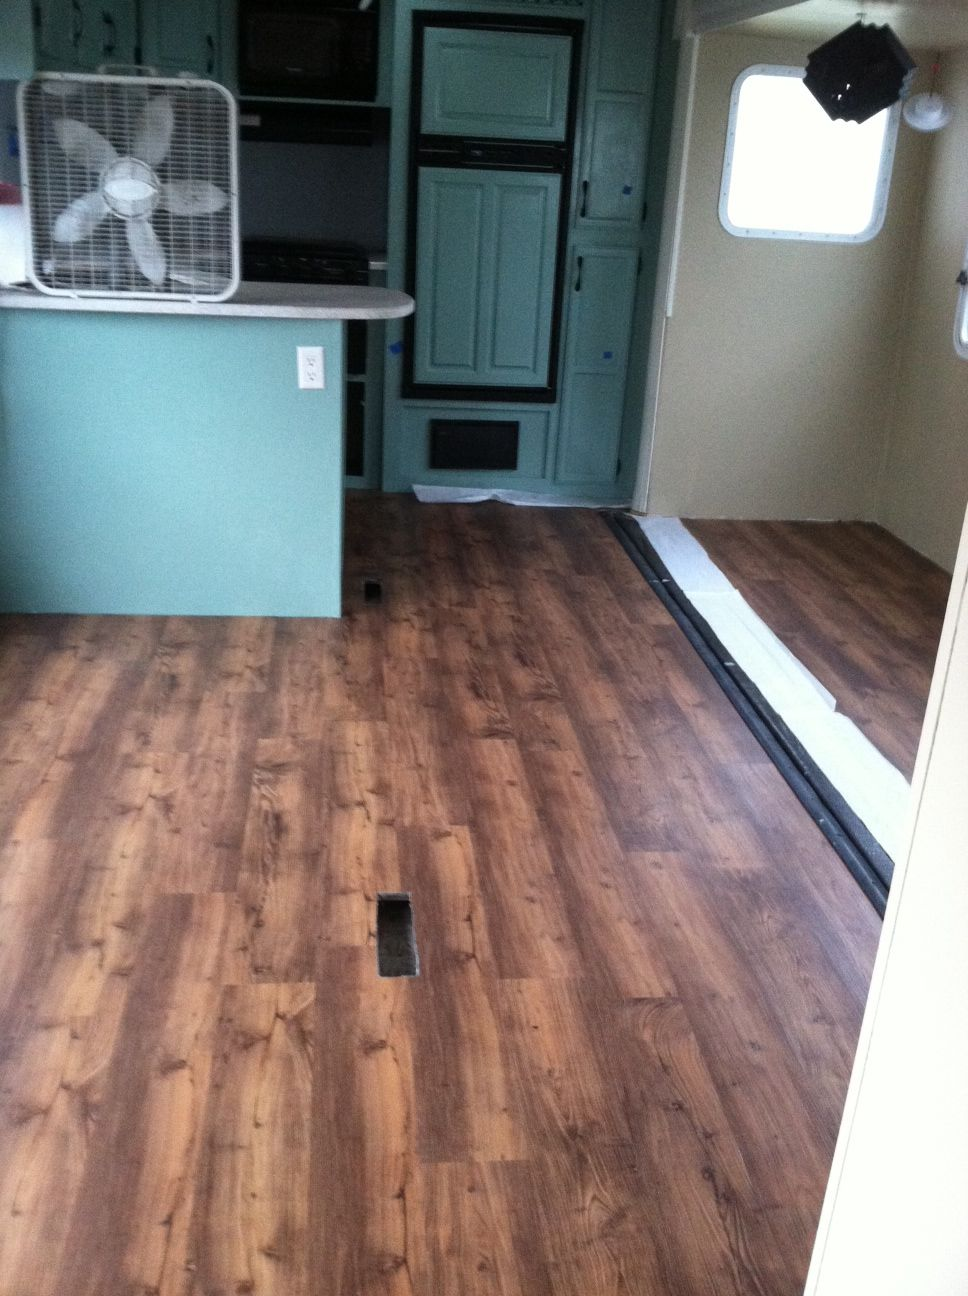 Allure Flooring For The RV With Some Pointers Tackling Slide